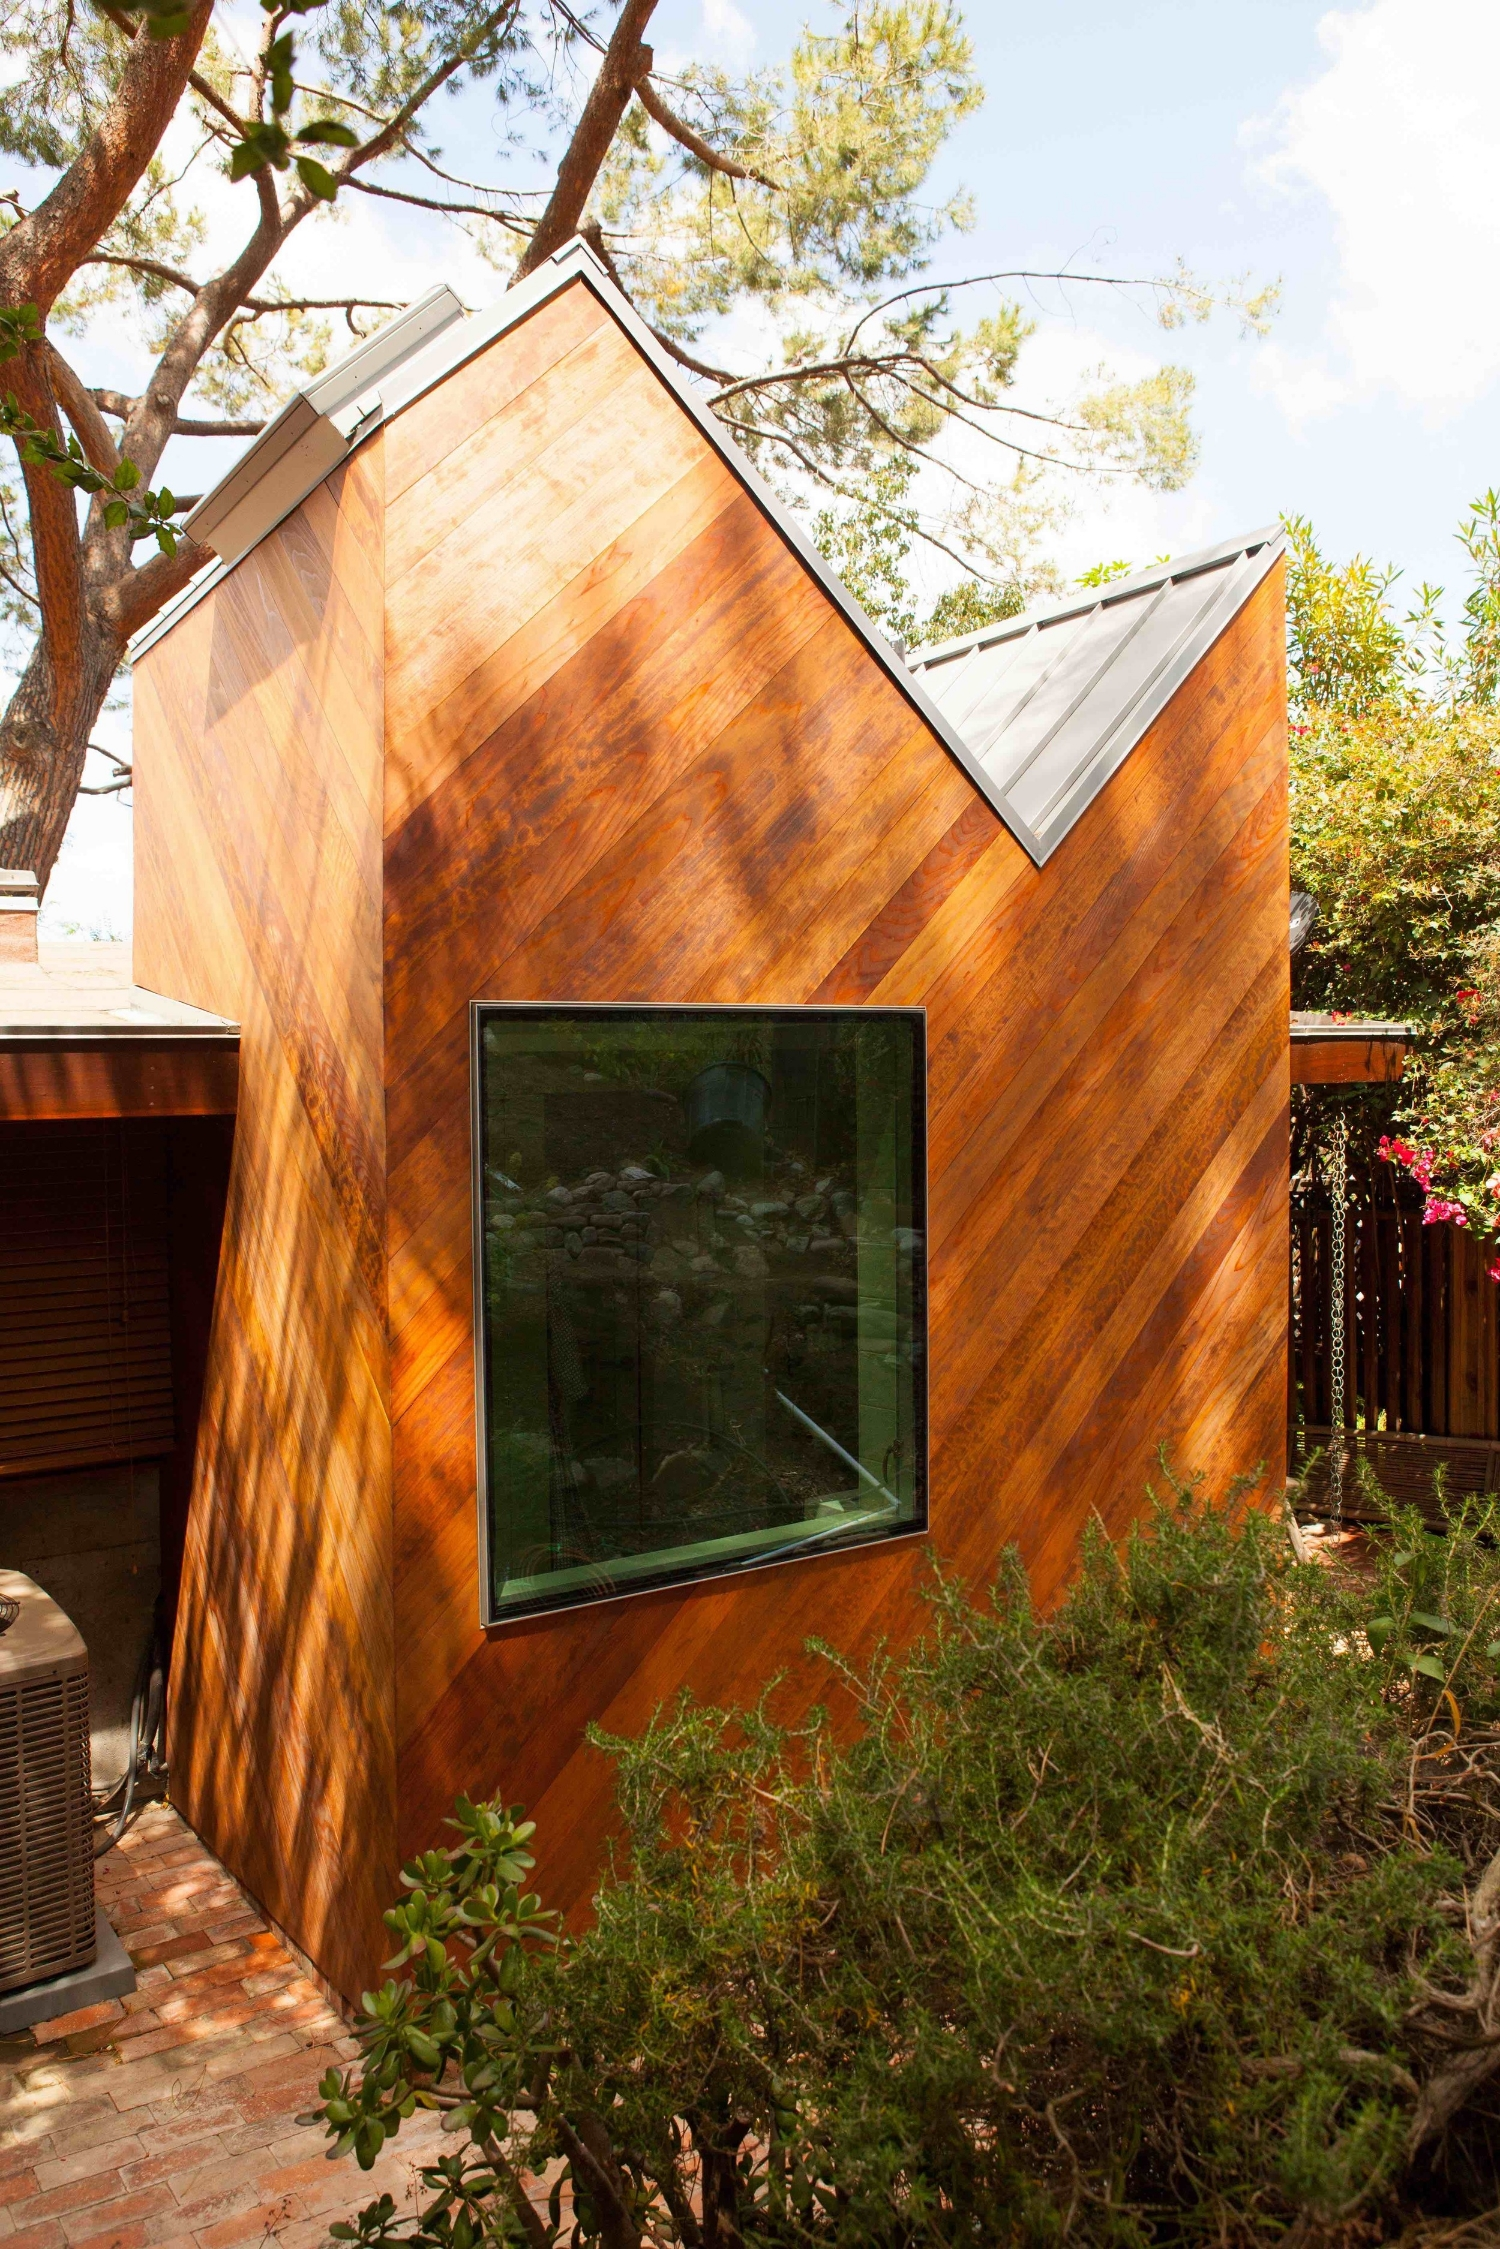 Galvalume standing seam metal roof. If I had my druthers all roofs would be metal roofs.